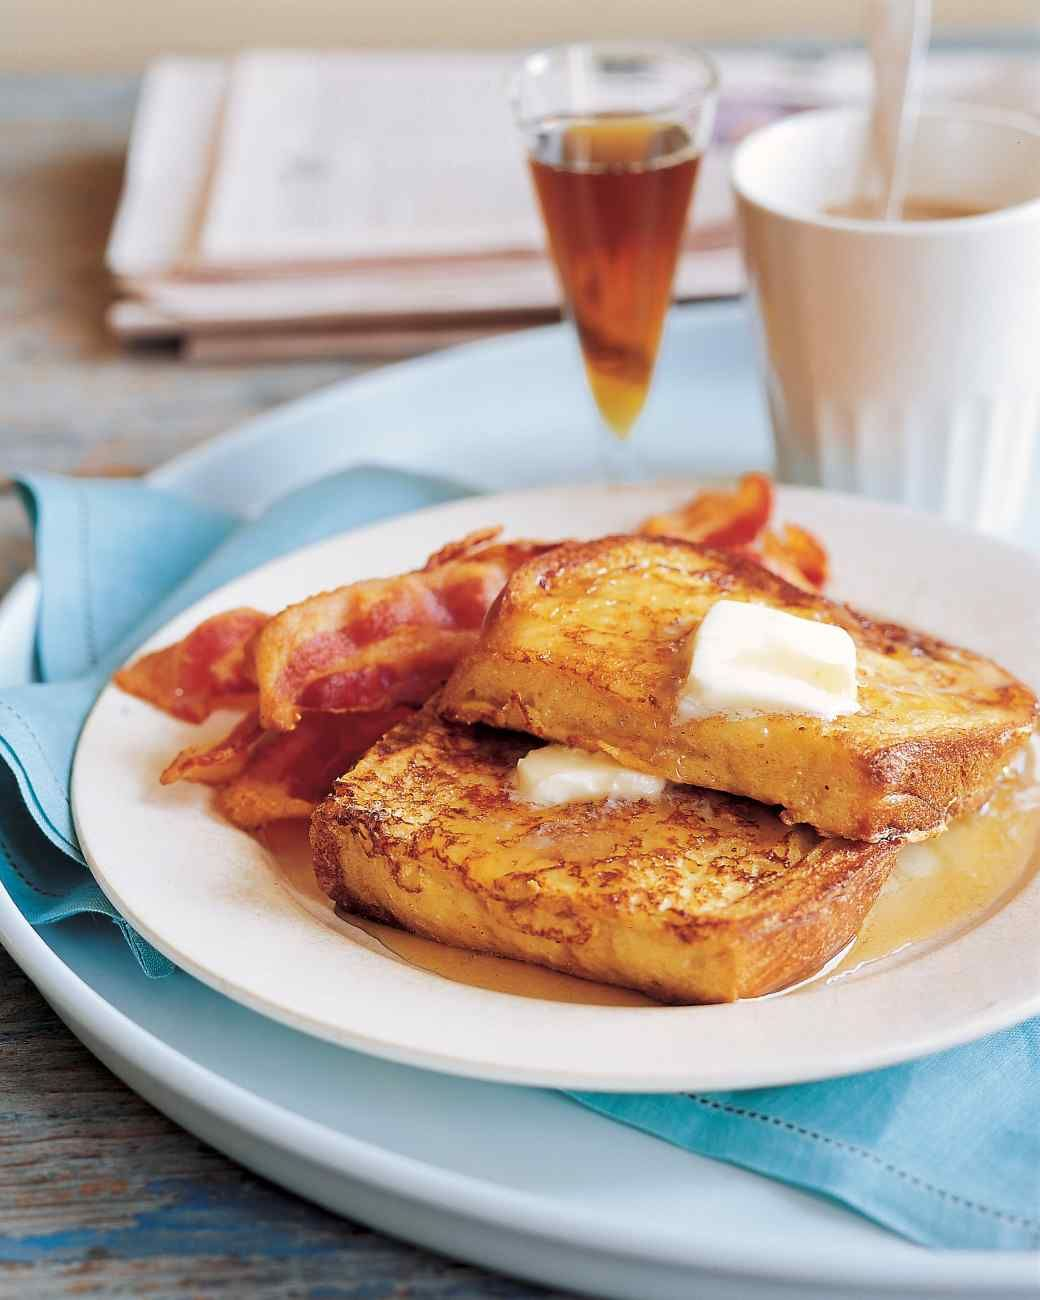 Any dense bread such as challah, brioche, or sourdough will work for this simple French toast recipe.